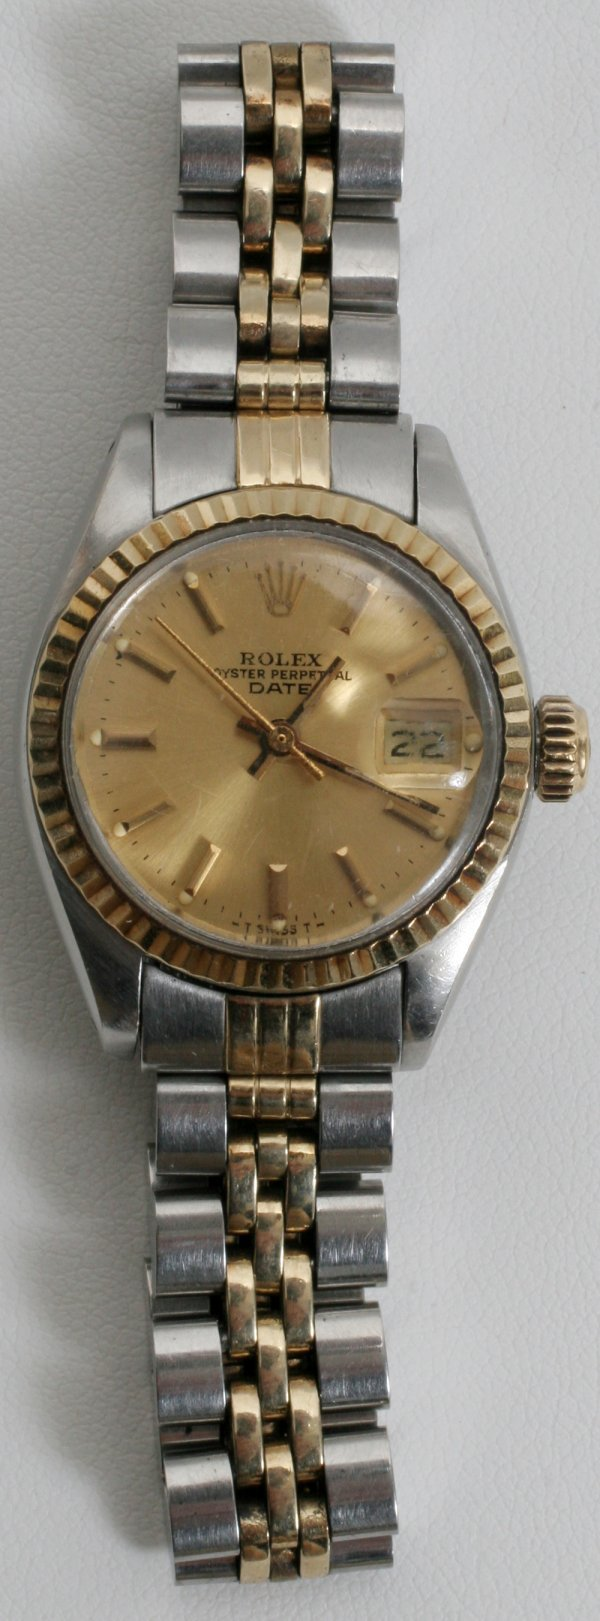 012023: 18KT AND STAINLESS STEEL, LADY ROLEX